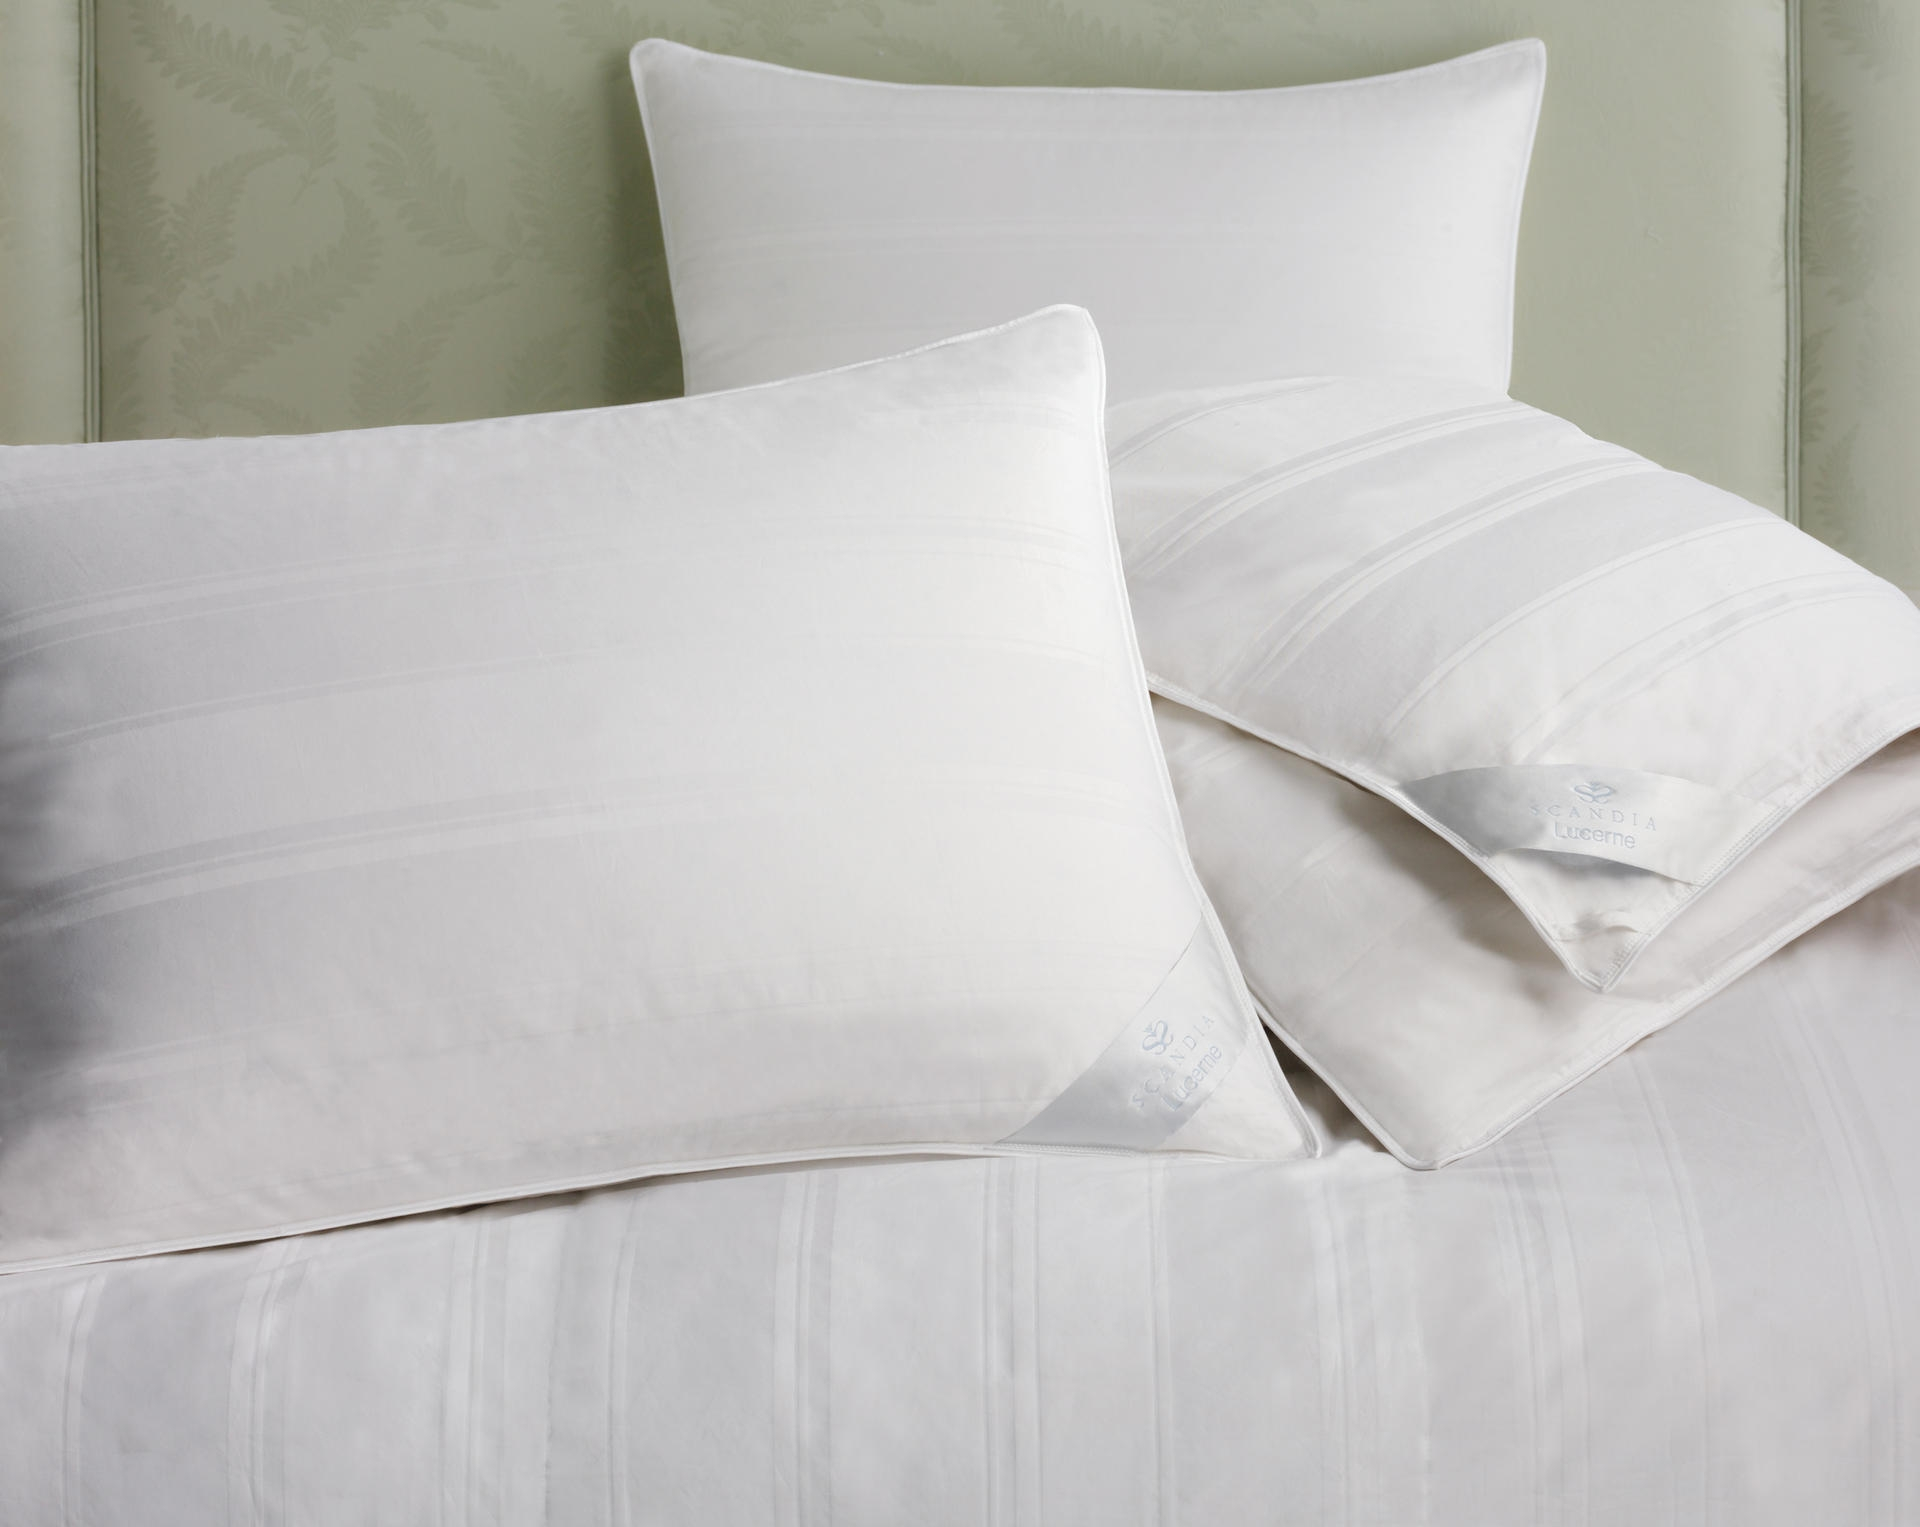 european goose hypoallergenic tencel summer cologne hungarian pin comforter weight white down heritage